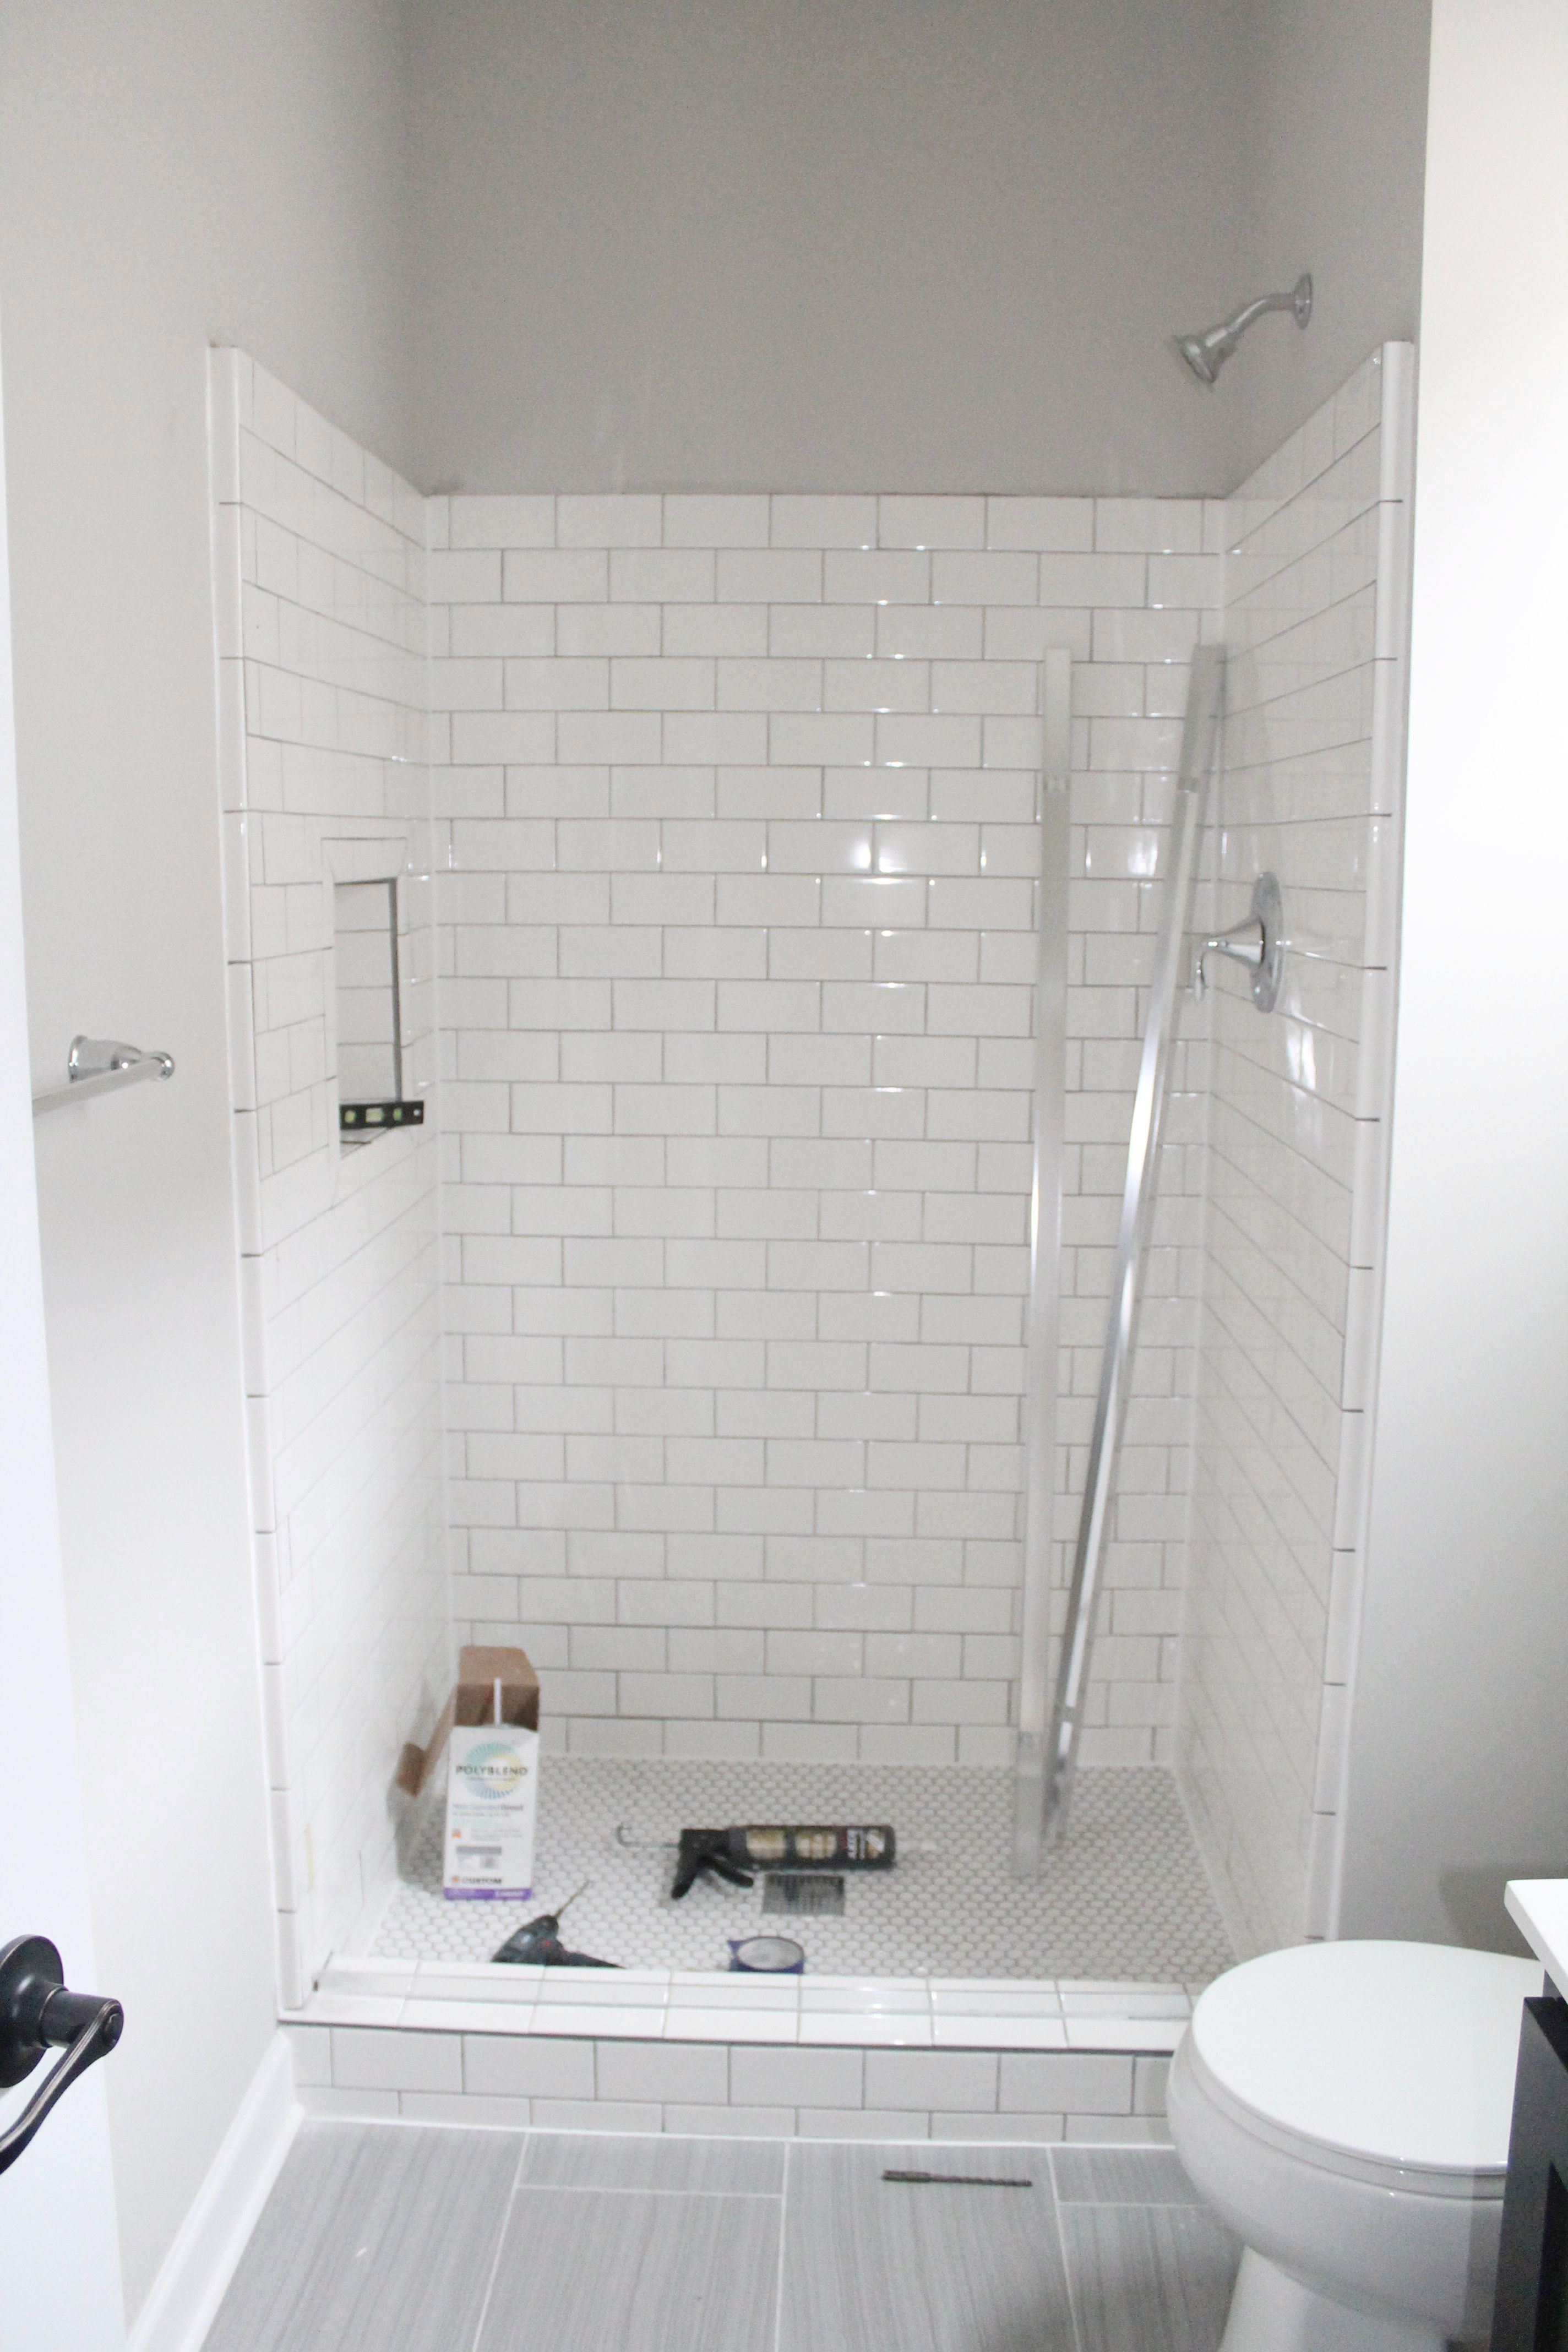 Small Bathroom Renovation Ideas Pictures Following Bathroom Tiles Popping Out Abou Bathroom Remodel Cost White Subway Tile Bathroom Small Bathroom Remodel Cost